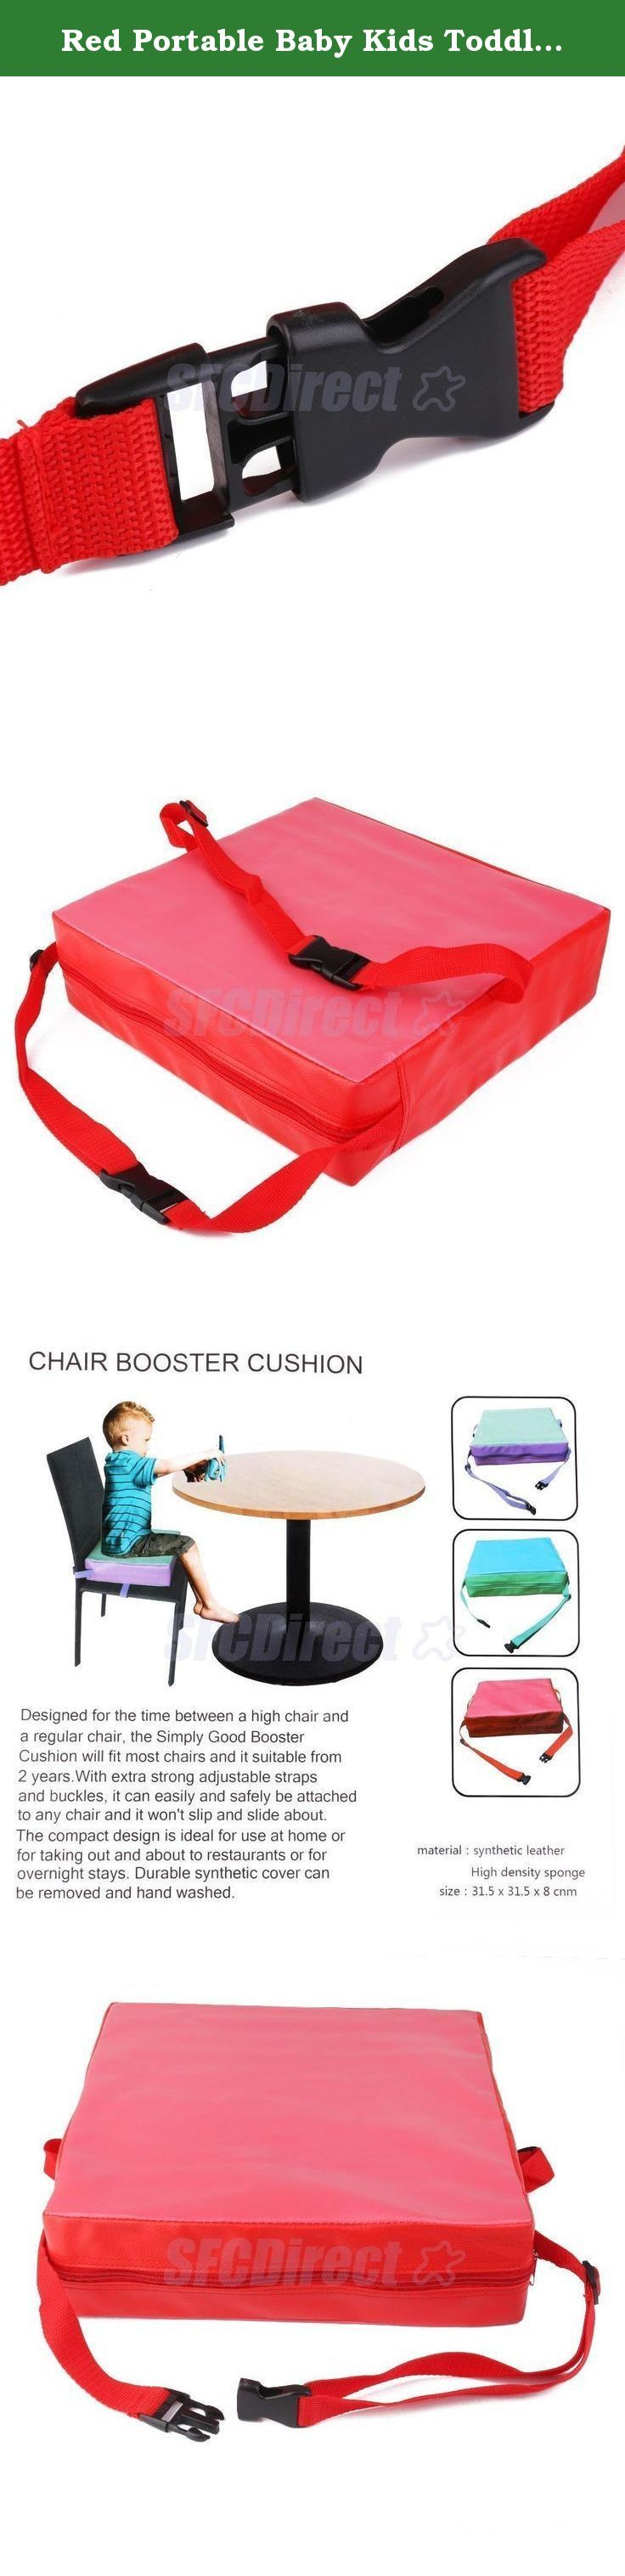 Red Portable Baby Kids Toddler Feeding High Chair Booster Seat Pad Dining Cushion. Life baby sitting in the chair to eat, because the body is not enough Gao, very convenient, even bought a special chair baby, but once their children grow up, they can not be used, and this time, we can help cushion this increase Gao to your baby, you can adjust the tightness to be split out sponge to clean and waterproof synthetic leather, food accidentally fell engage in dirty, as long as a wet paper…